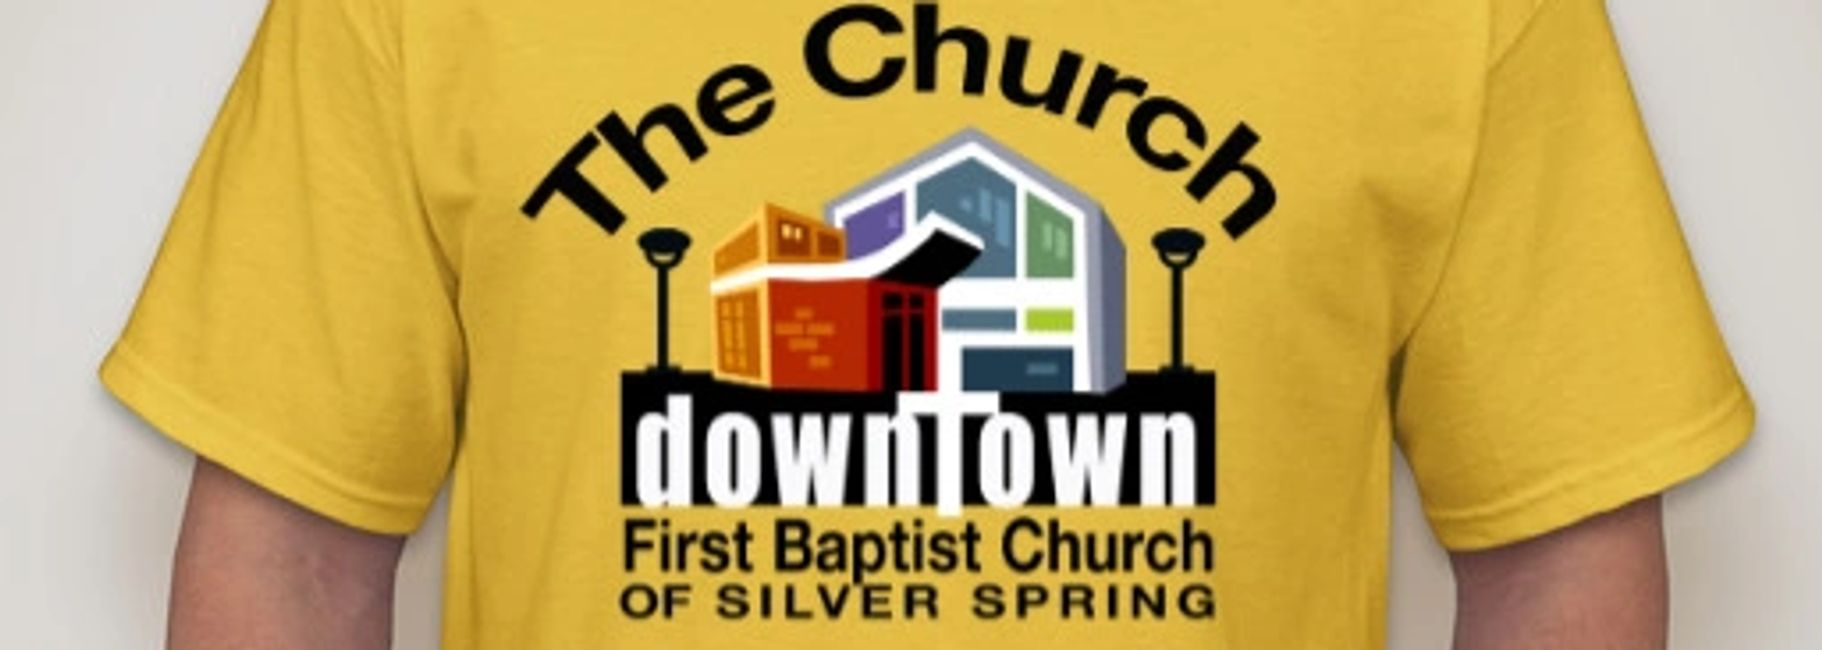 Order First Baptist Church of Silver Spring The Church Downtown t-shirts today